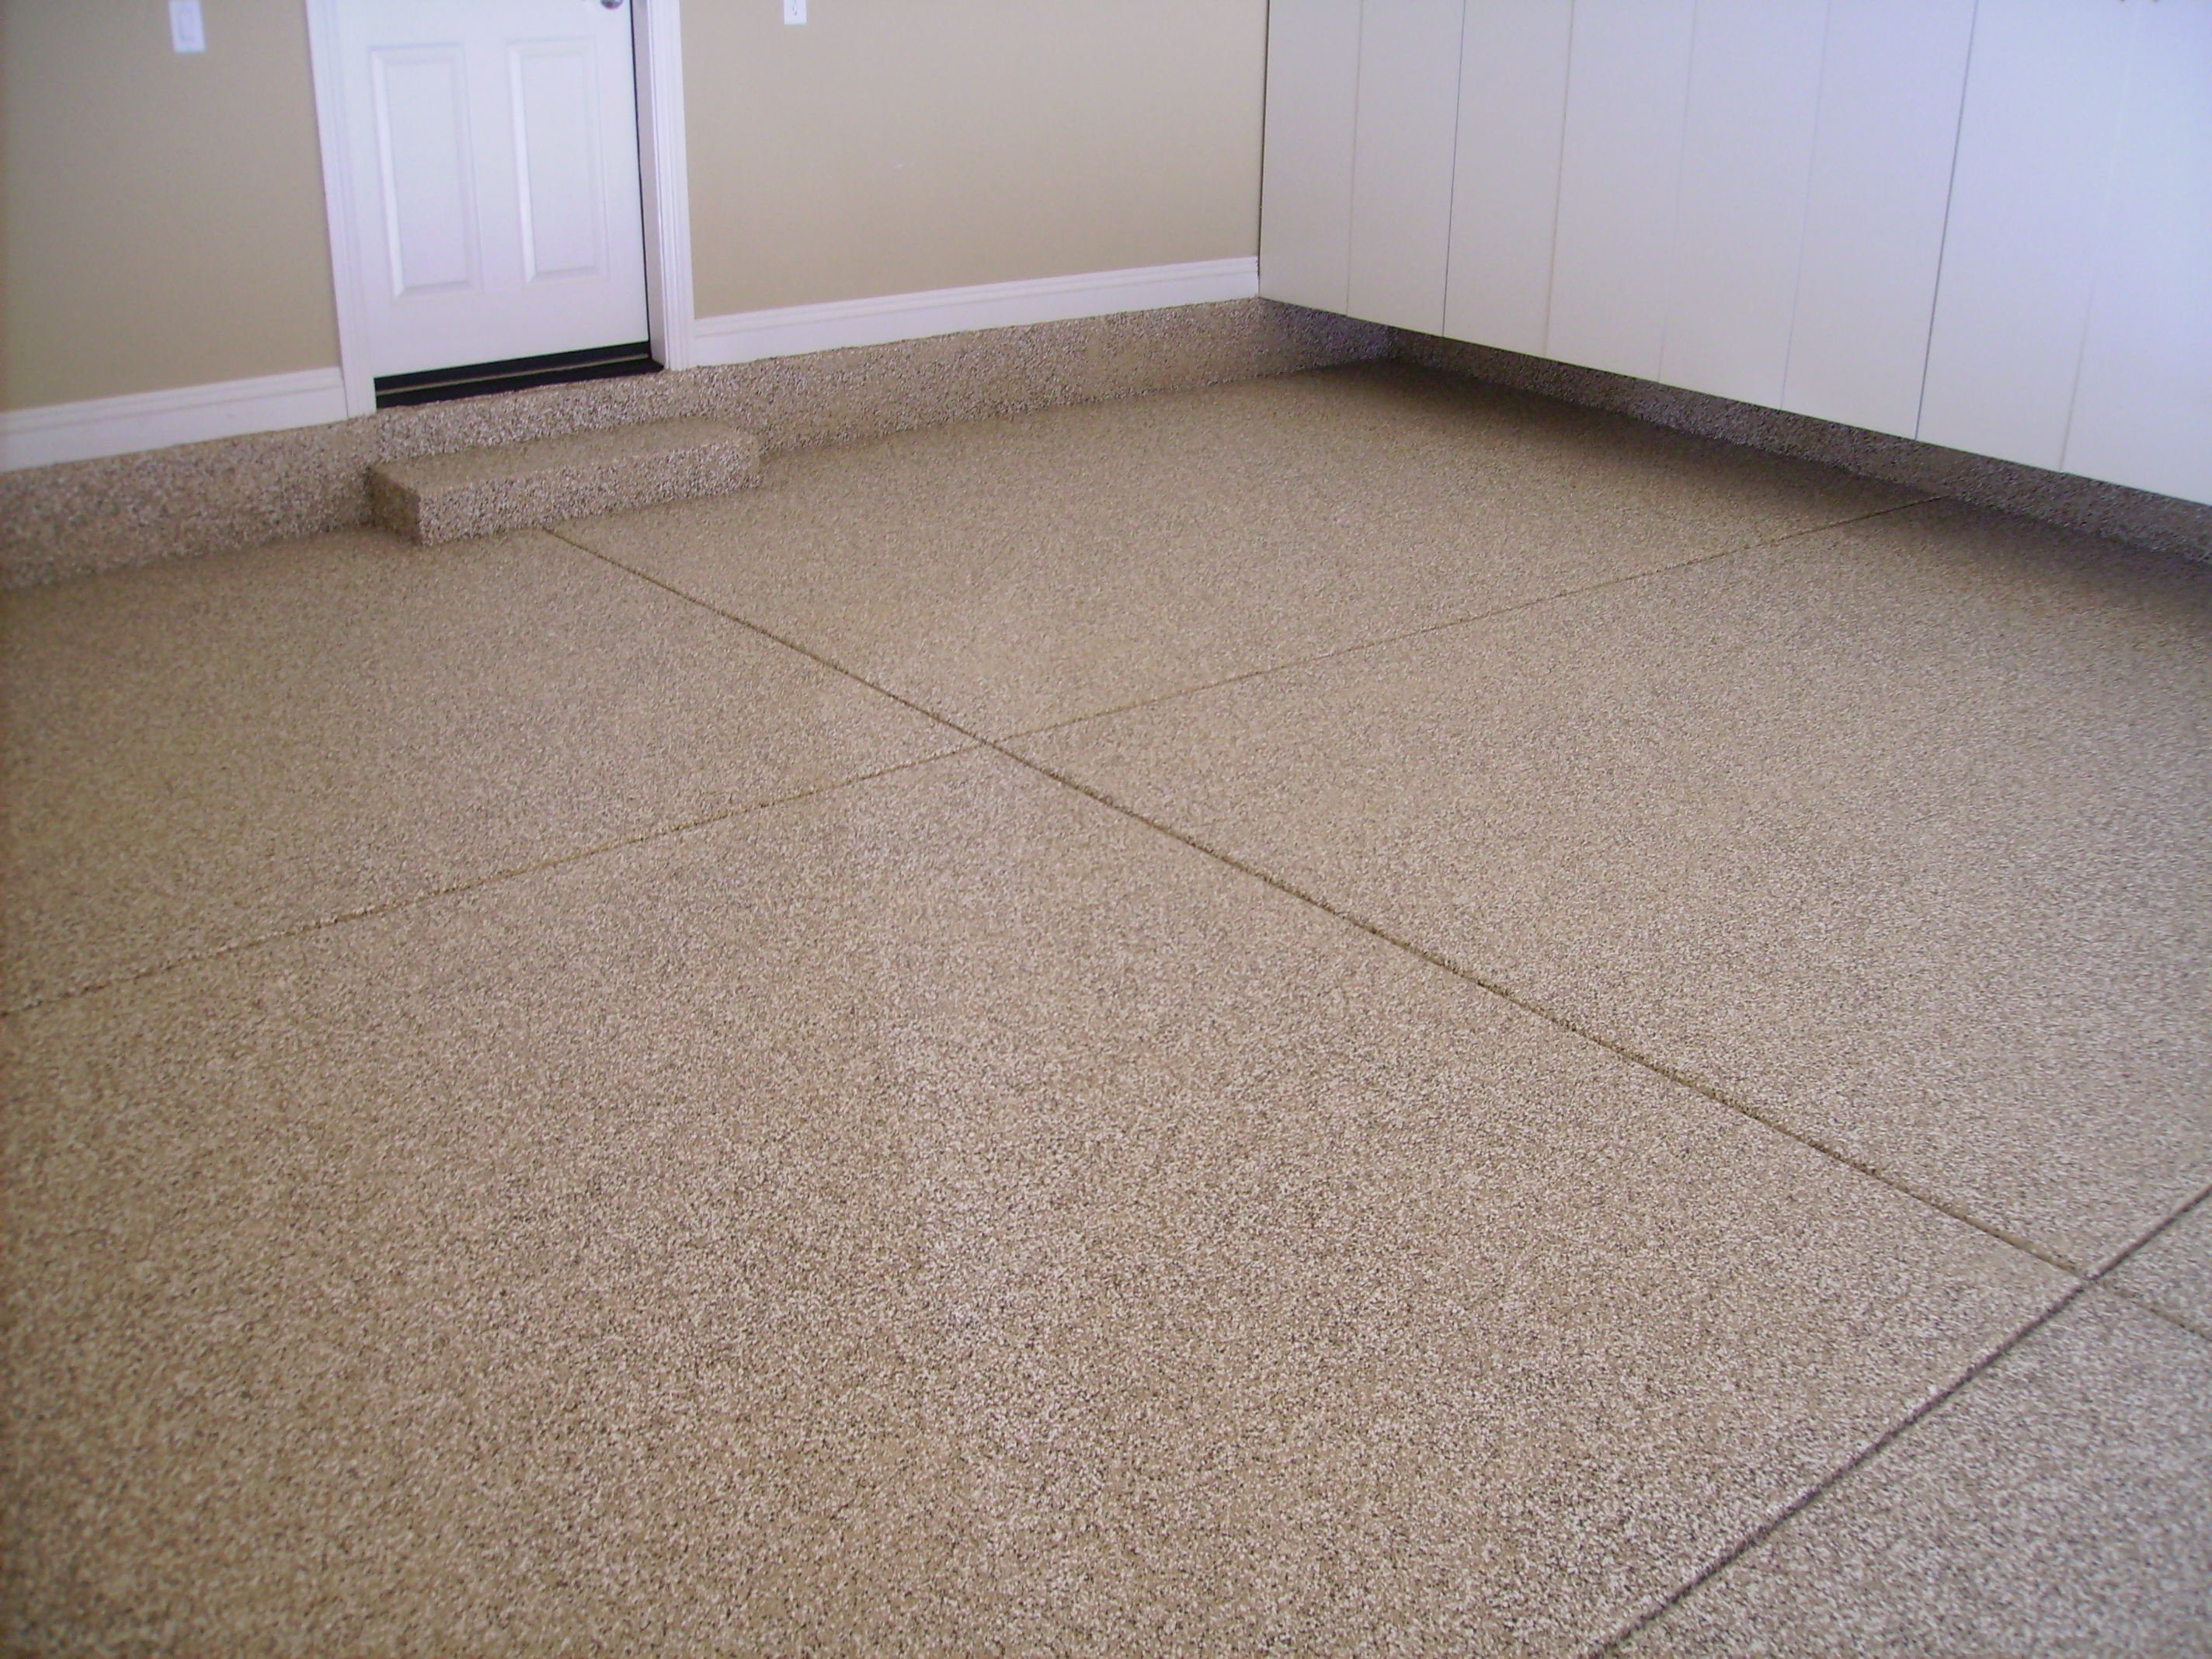 Floor coating las vegas garage floor coatings for Concrete floor coatings